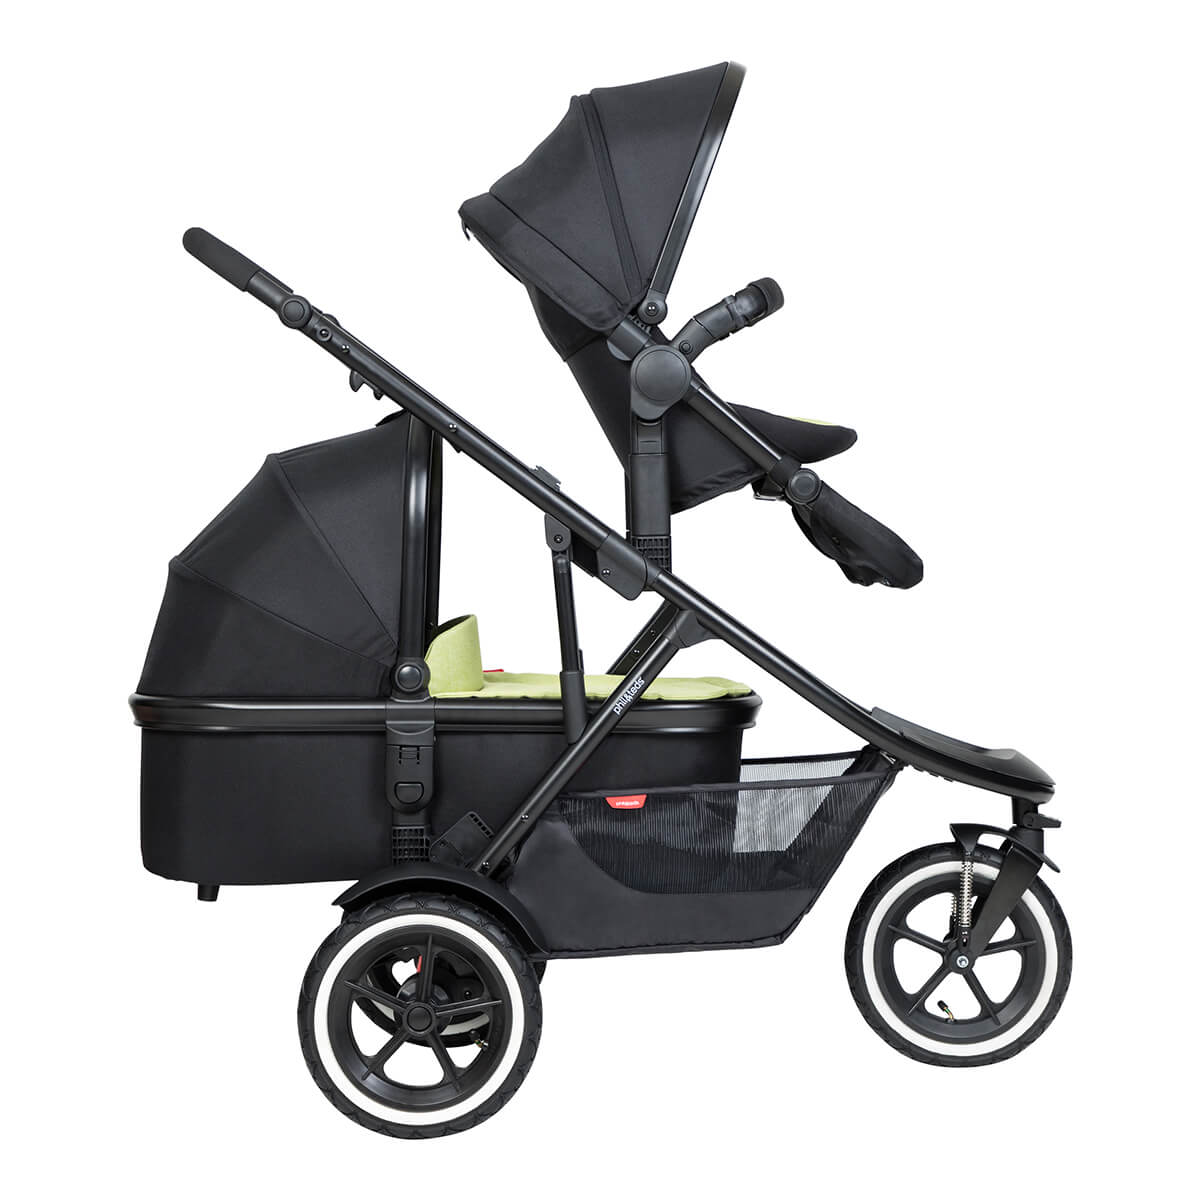 https://cdn.accentuate.io/4513463369824/19440099688632/philteds-sport-buggy-with-double-kit-extended-clip-and-snug-carrycot-side-view-v1626486645333.jpg?1200x1200